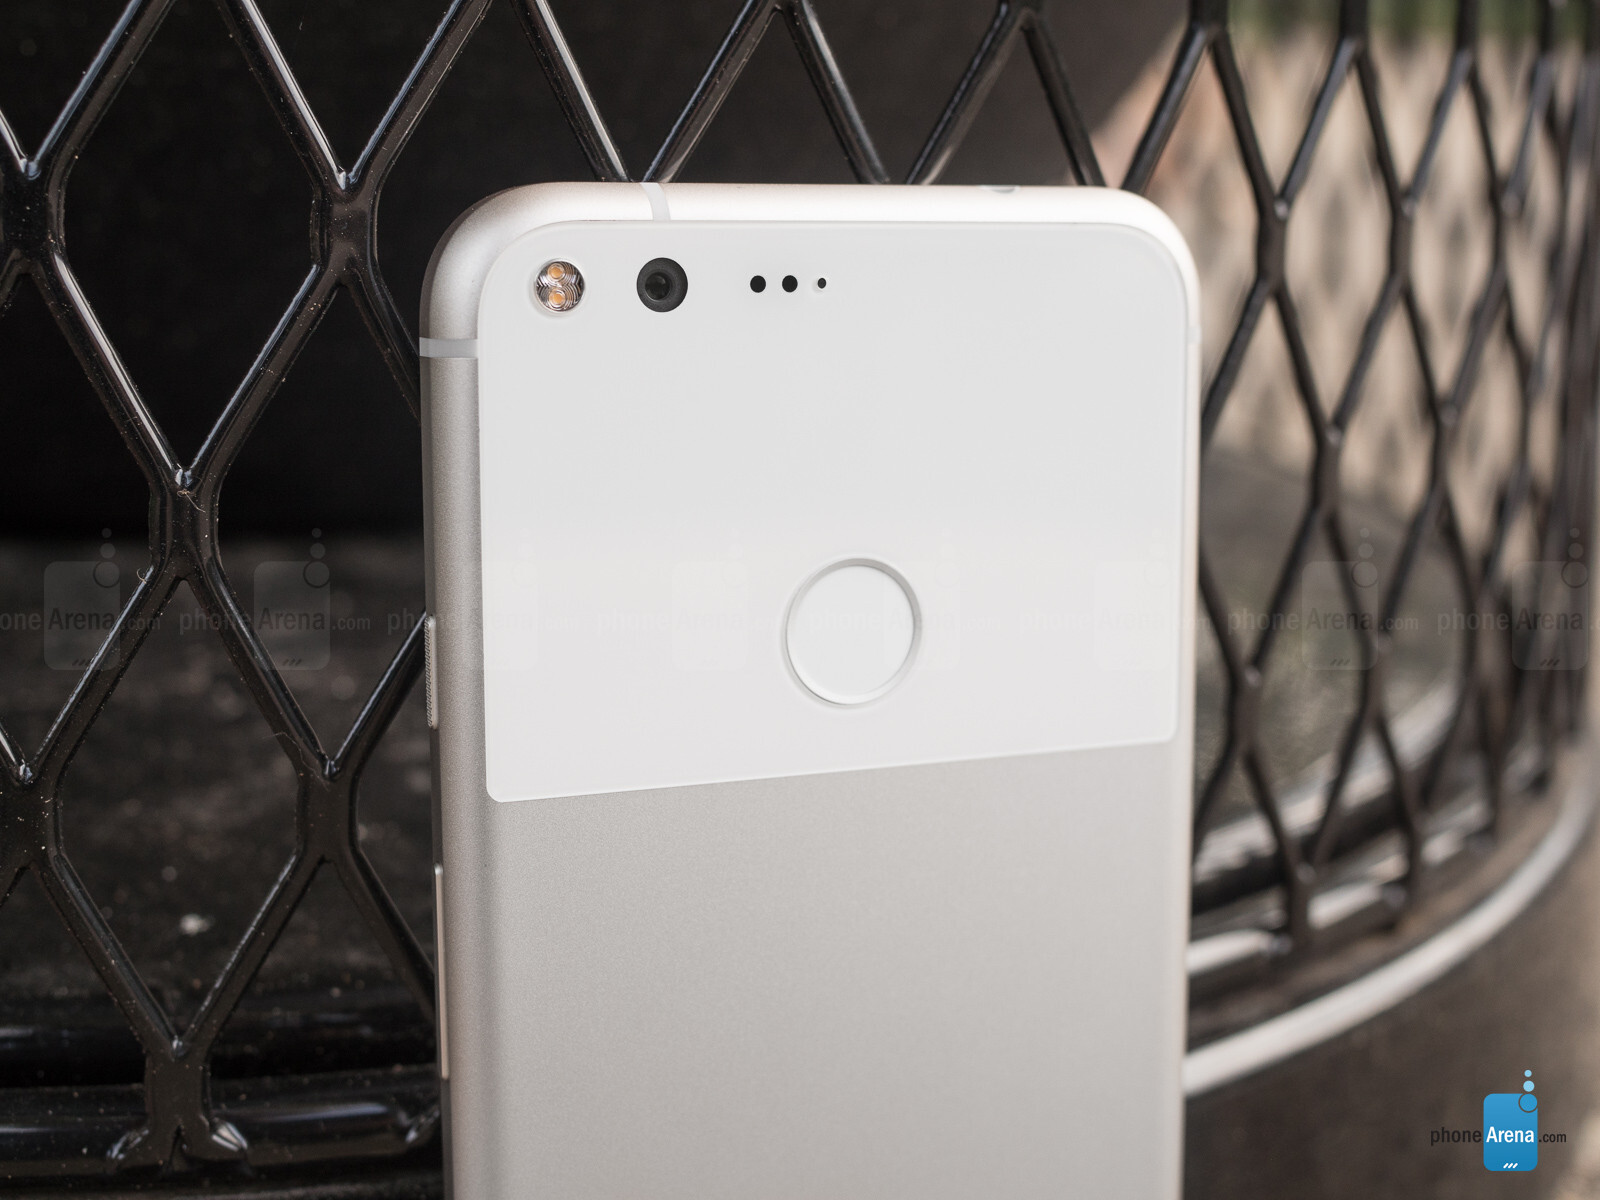 The Pixel XL has an excellent camera on par with the best out there